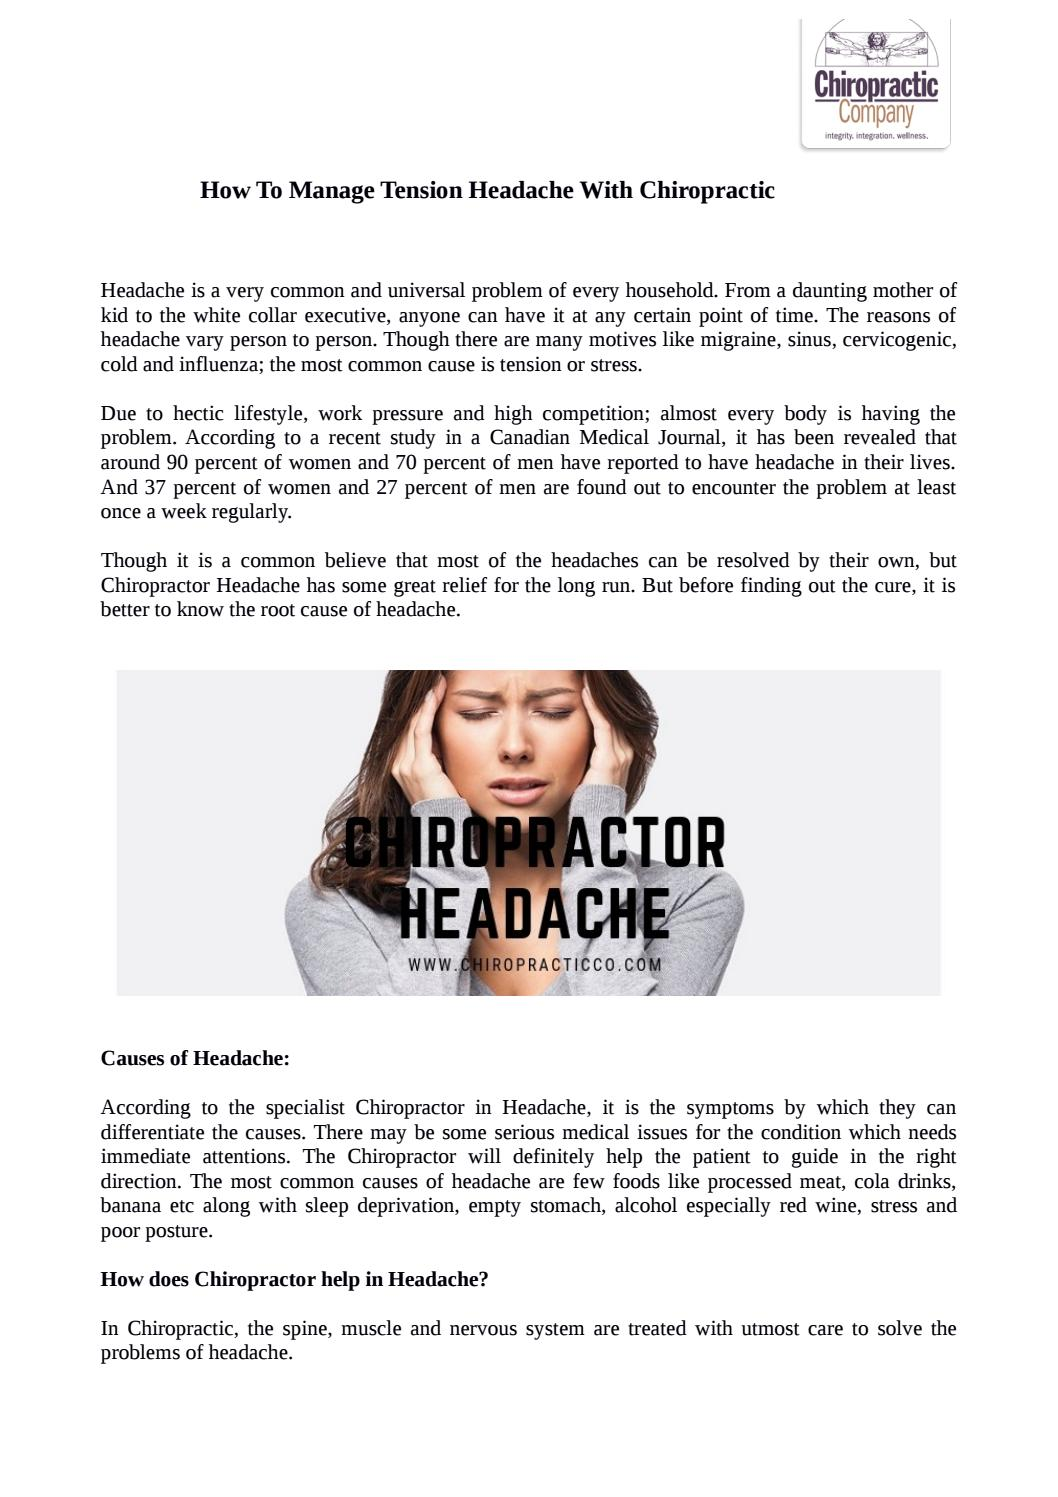 How To Manage Tension Headache With Chiropractic by